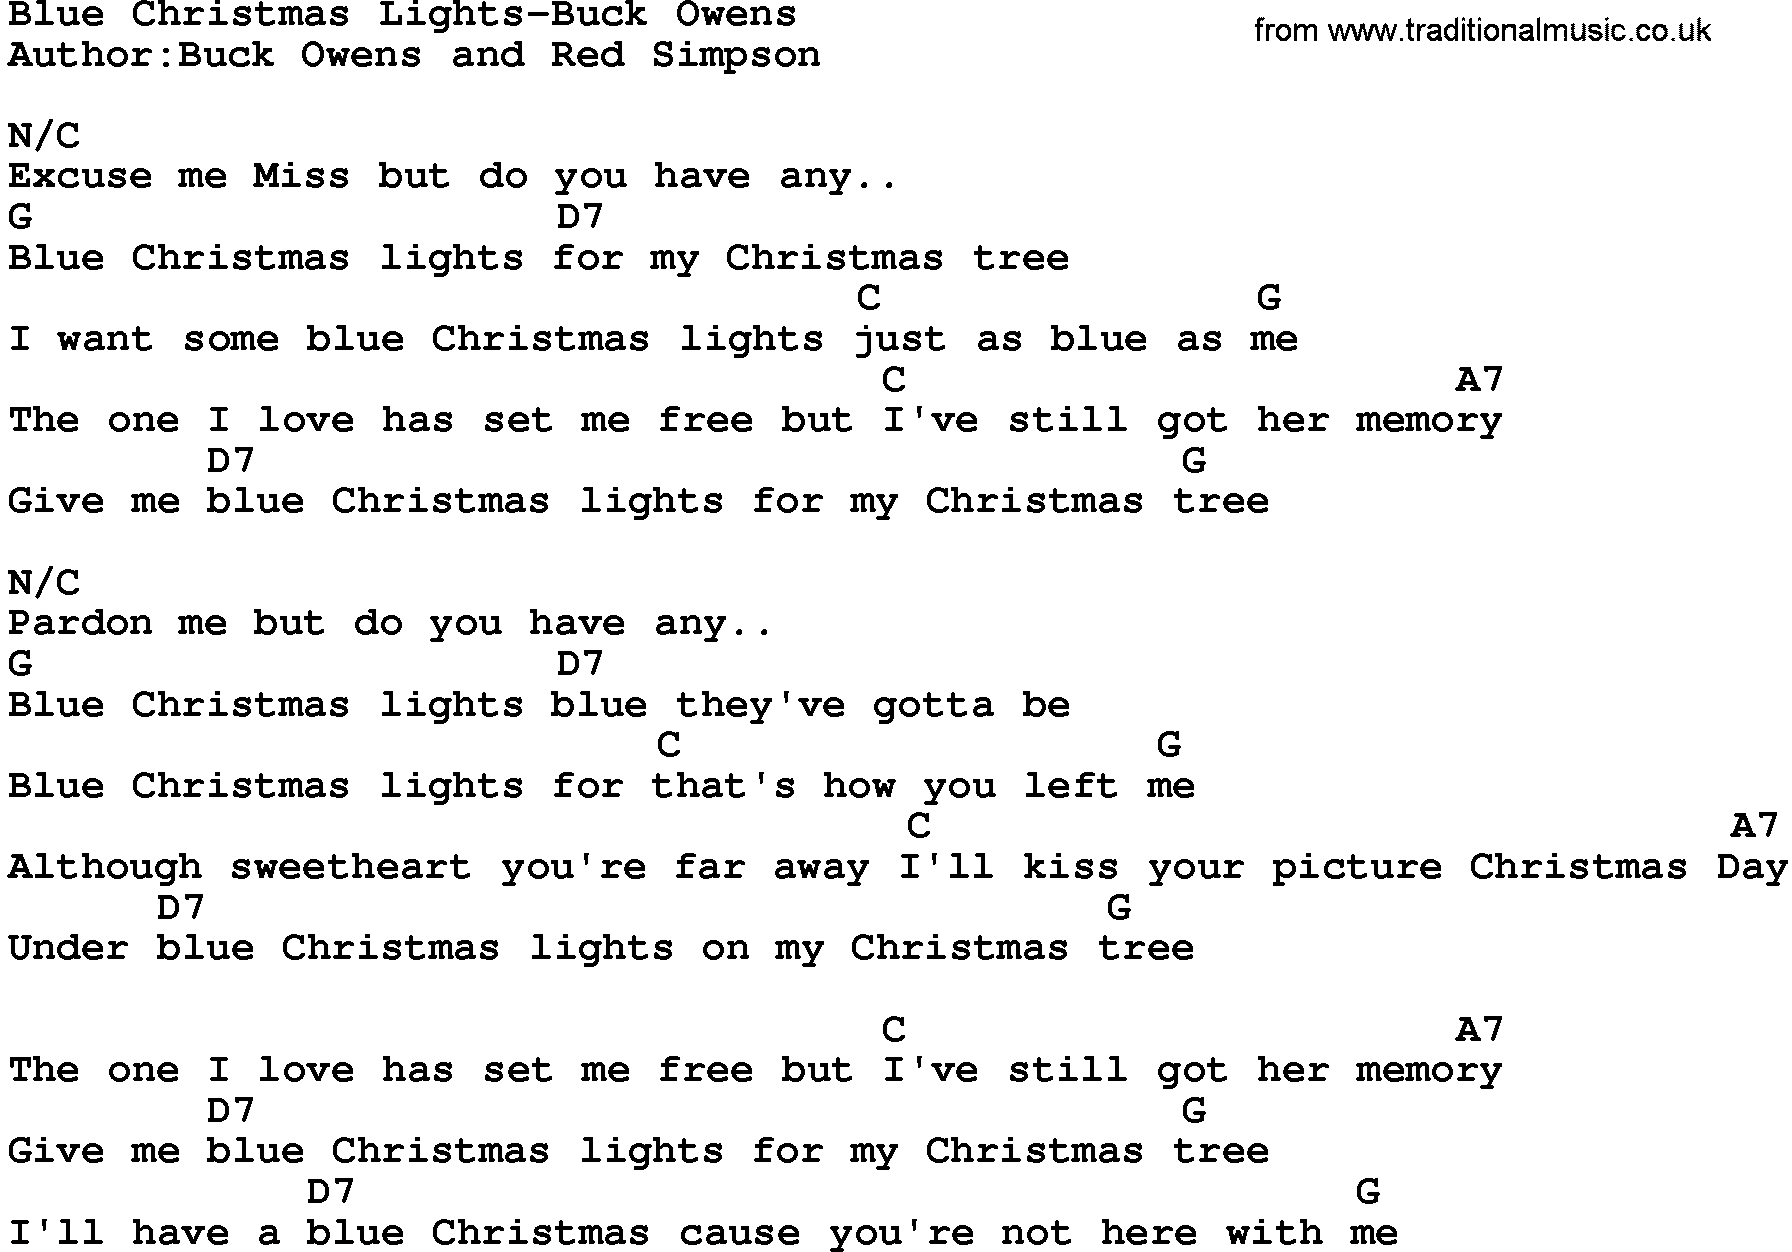 Country Music:Blue Christmas Lights-Buck Owens Lyrics and Chords